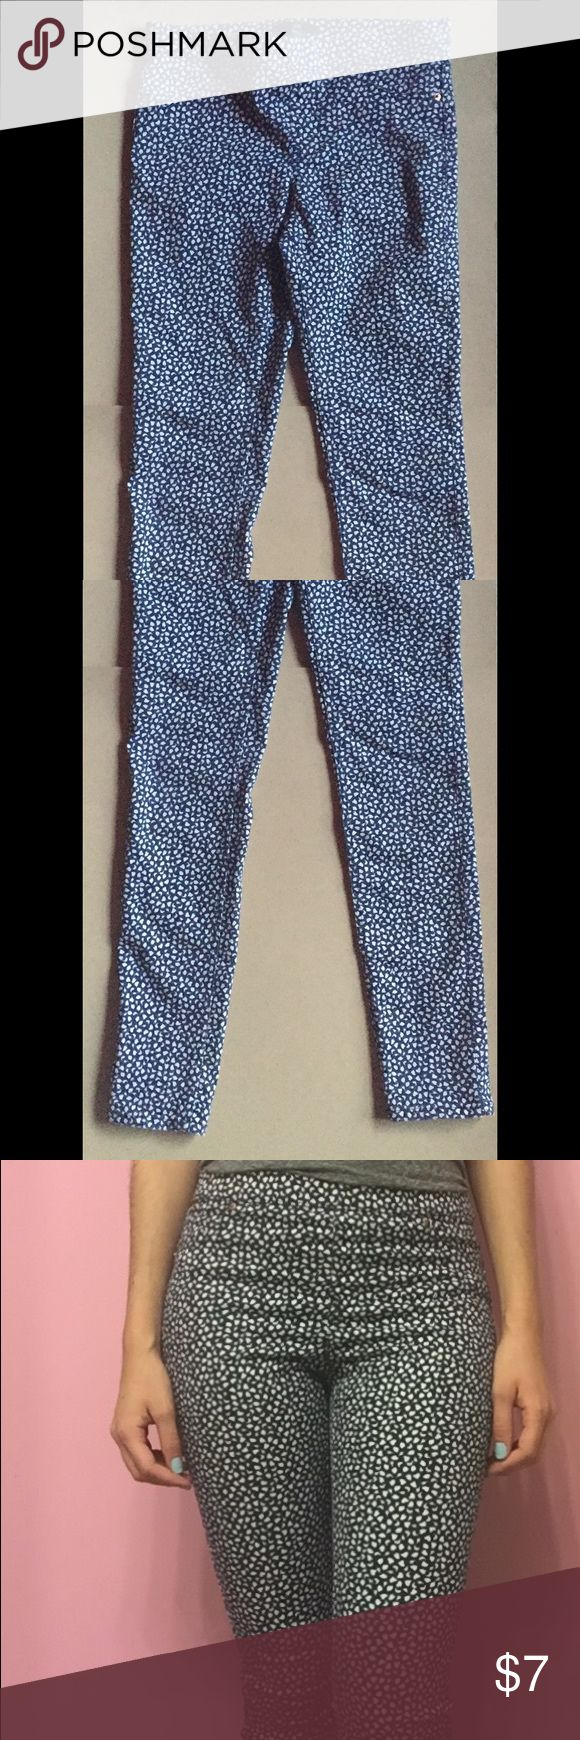 H&M Patterned denim leggings This are cute bright blue and white patterned denim leggings from H&M only worn once or twice H&M Pants Leggings